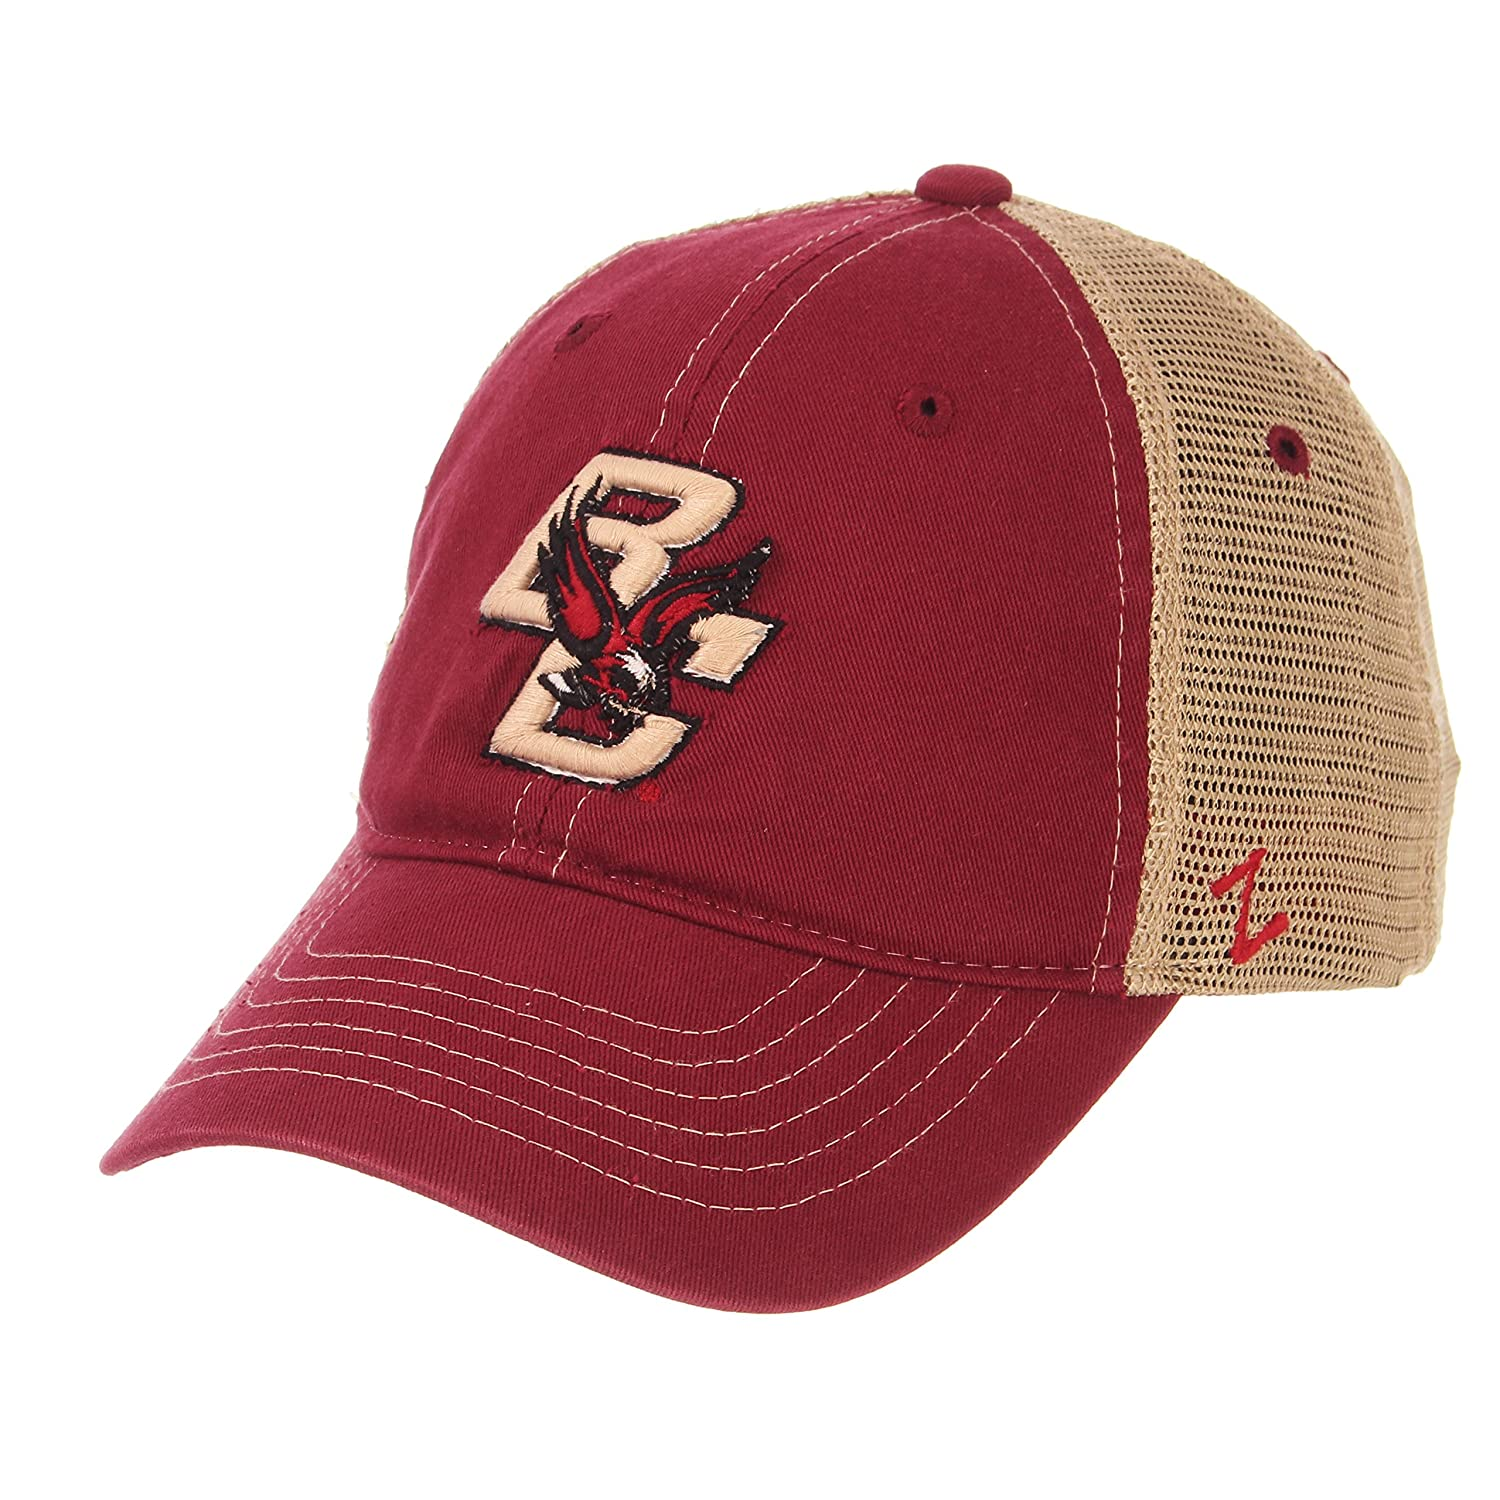 Institutionリラックスキャップ B0791SB7Z4 B0791SB7Z4 Adjustable Adjustable College Adjustable|Boston College Eagles, KAZOON カー用品:0872a3e6 --- acee.org.ar